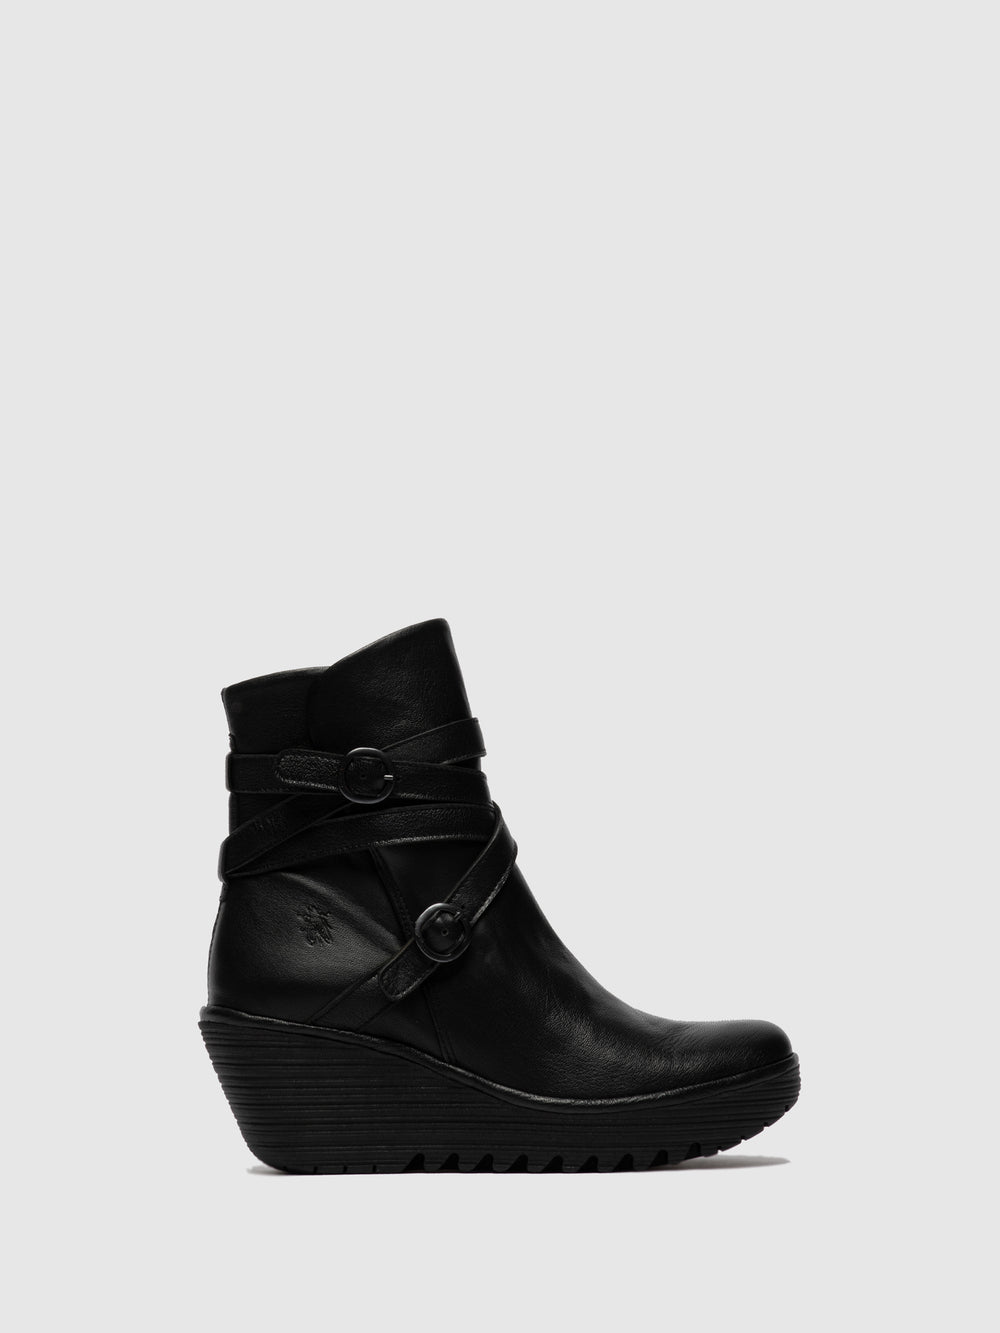 Buckle Ankle Boots YOMO249FLY MOUSSE BLACK